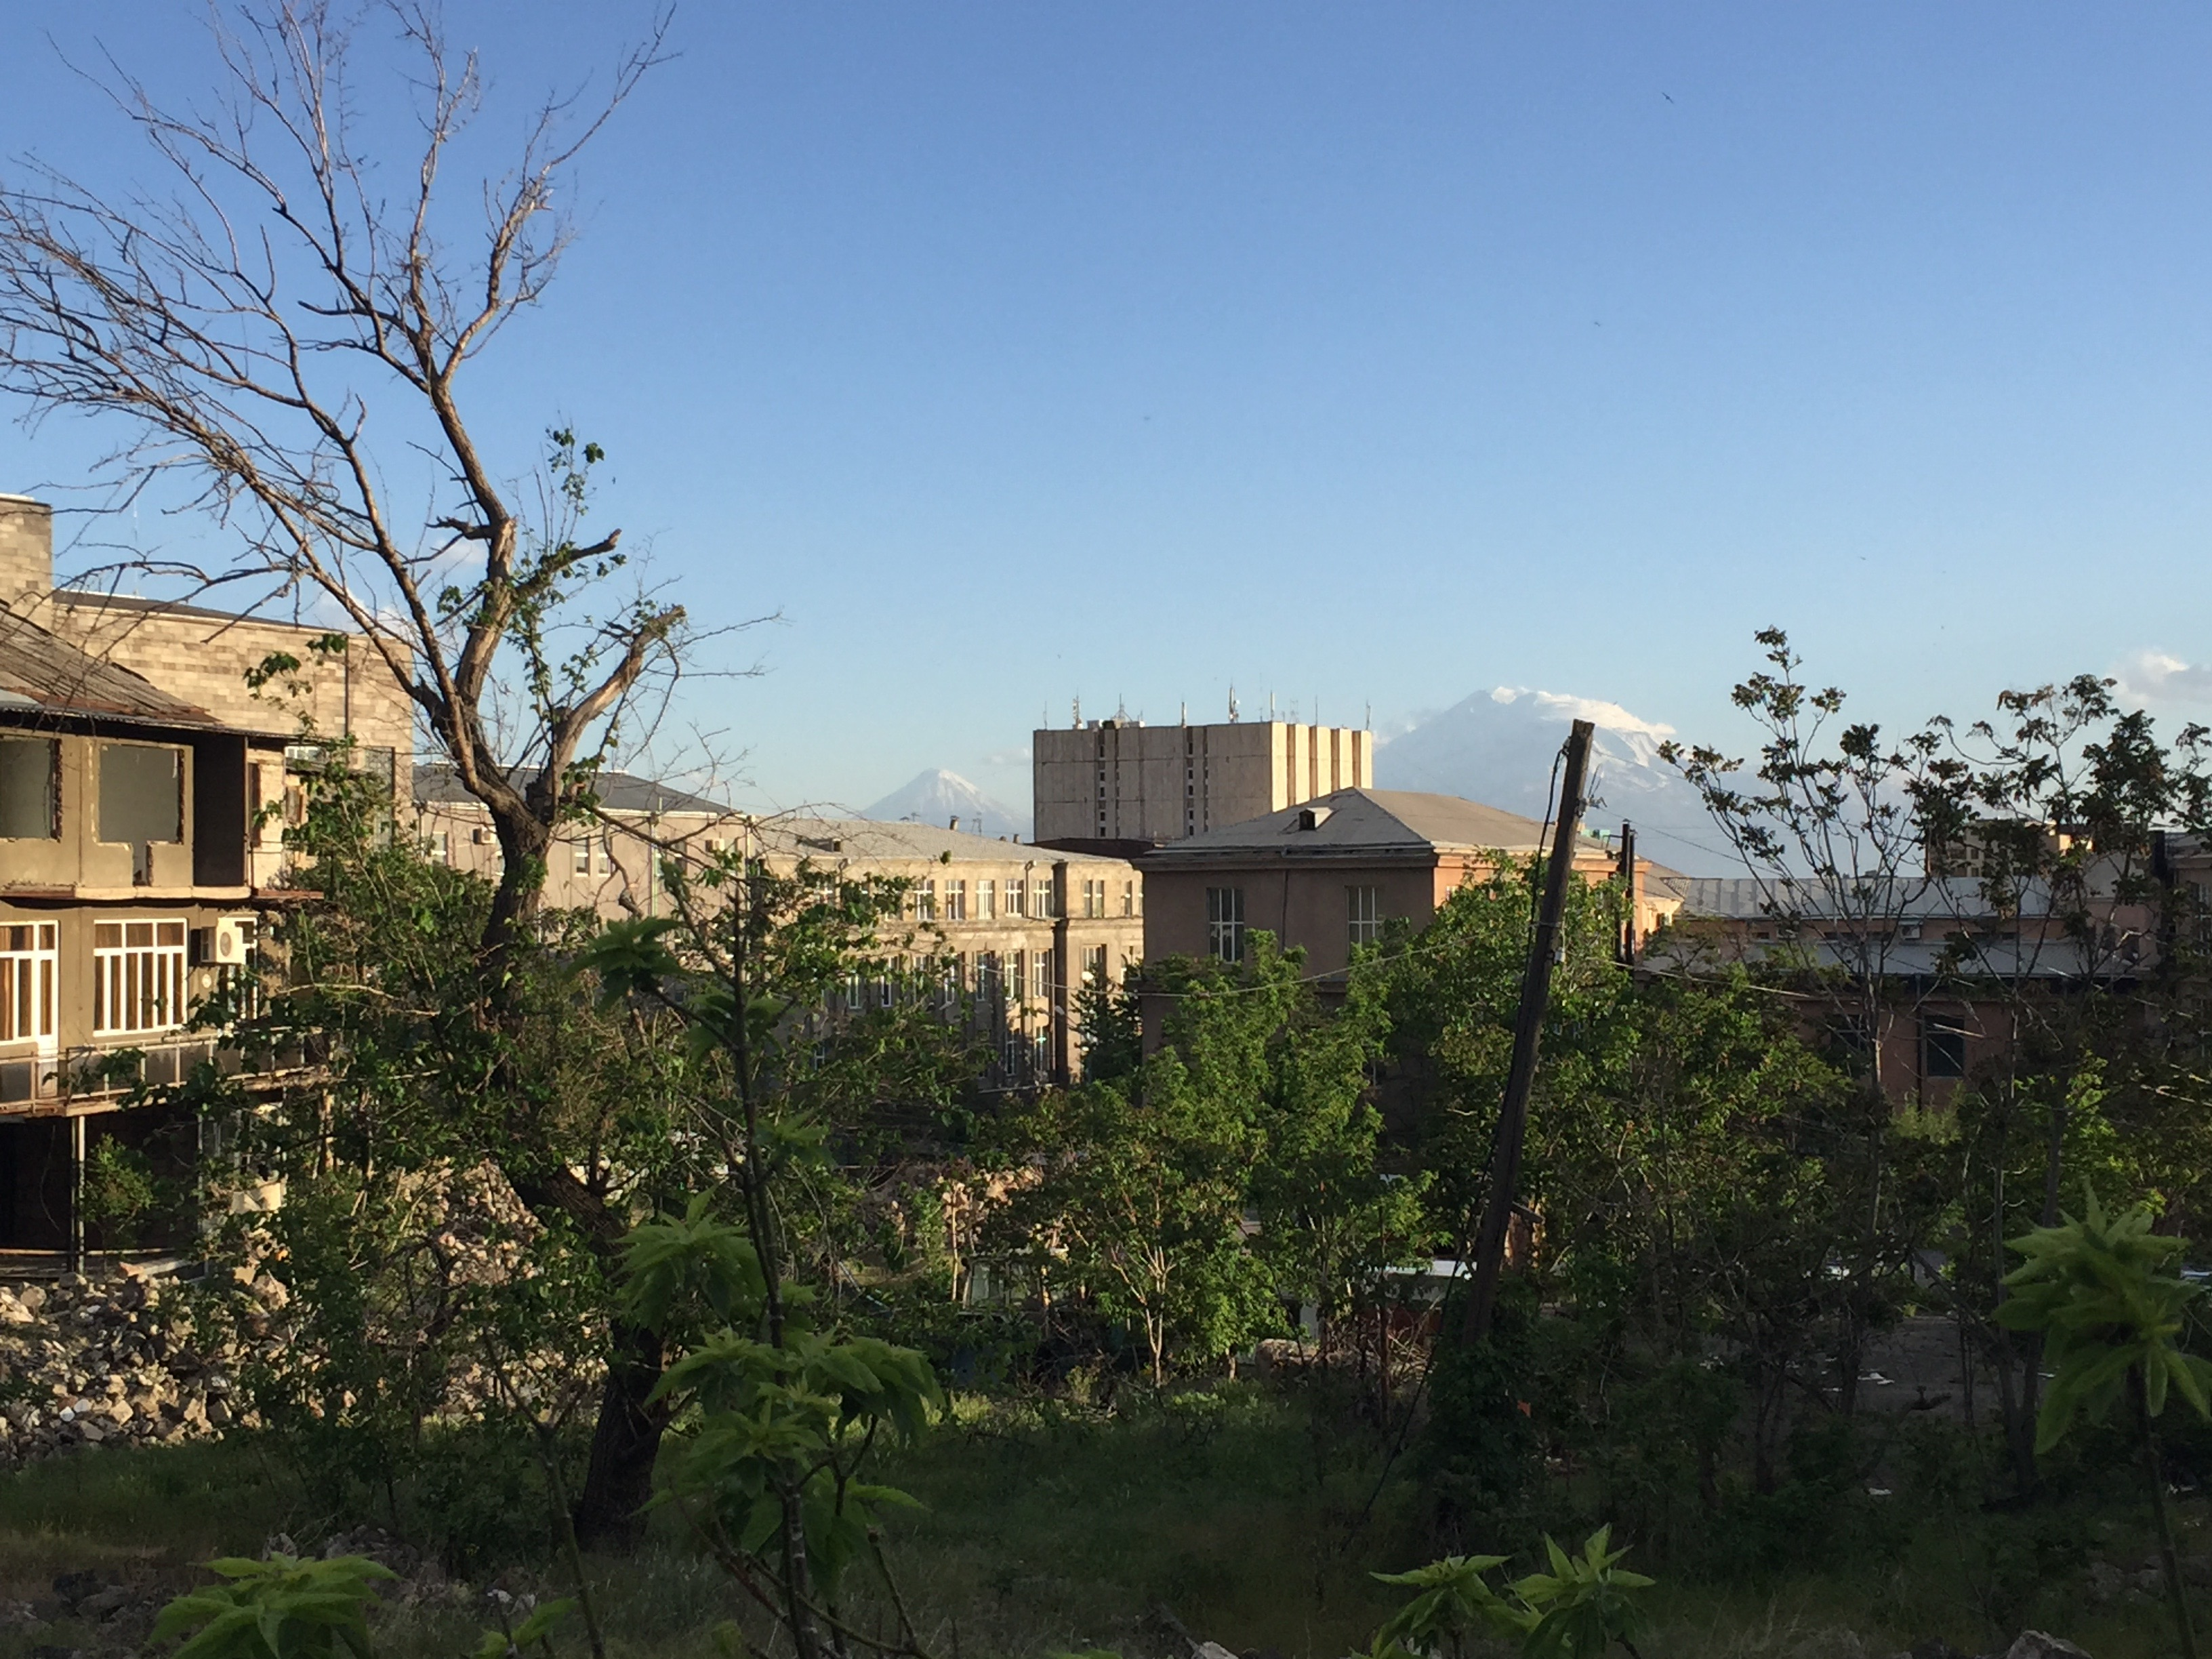 Yerevan from the back